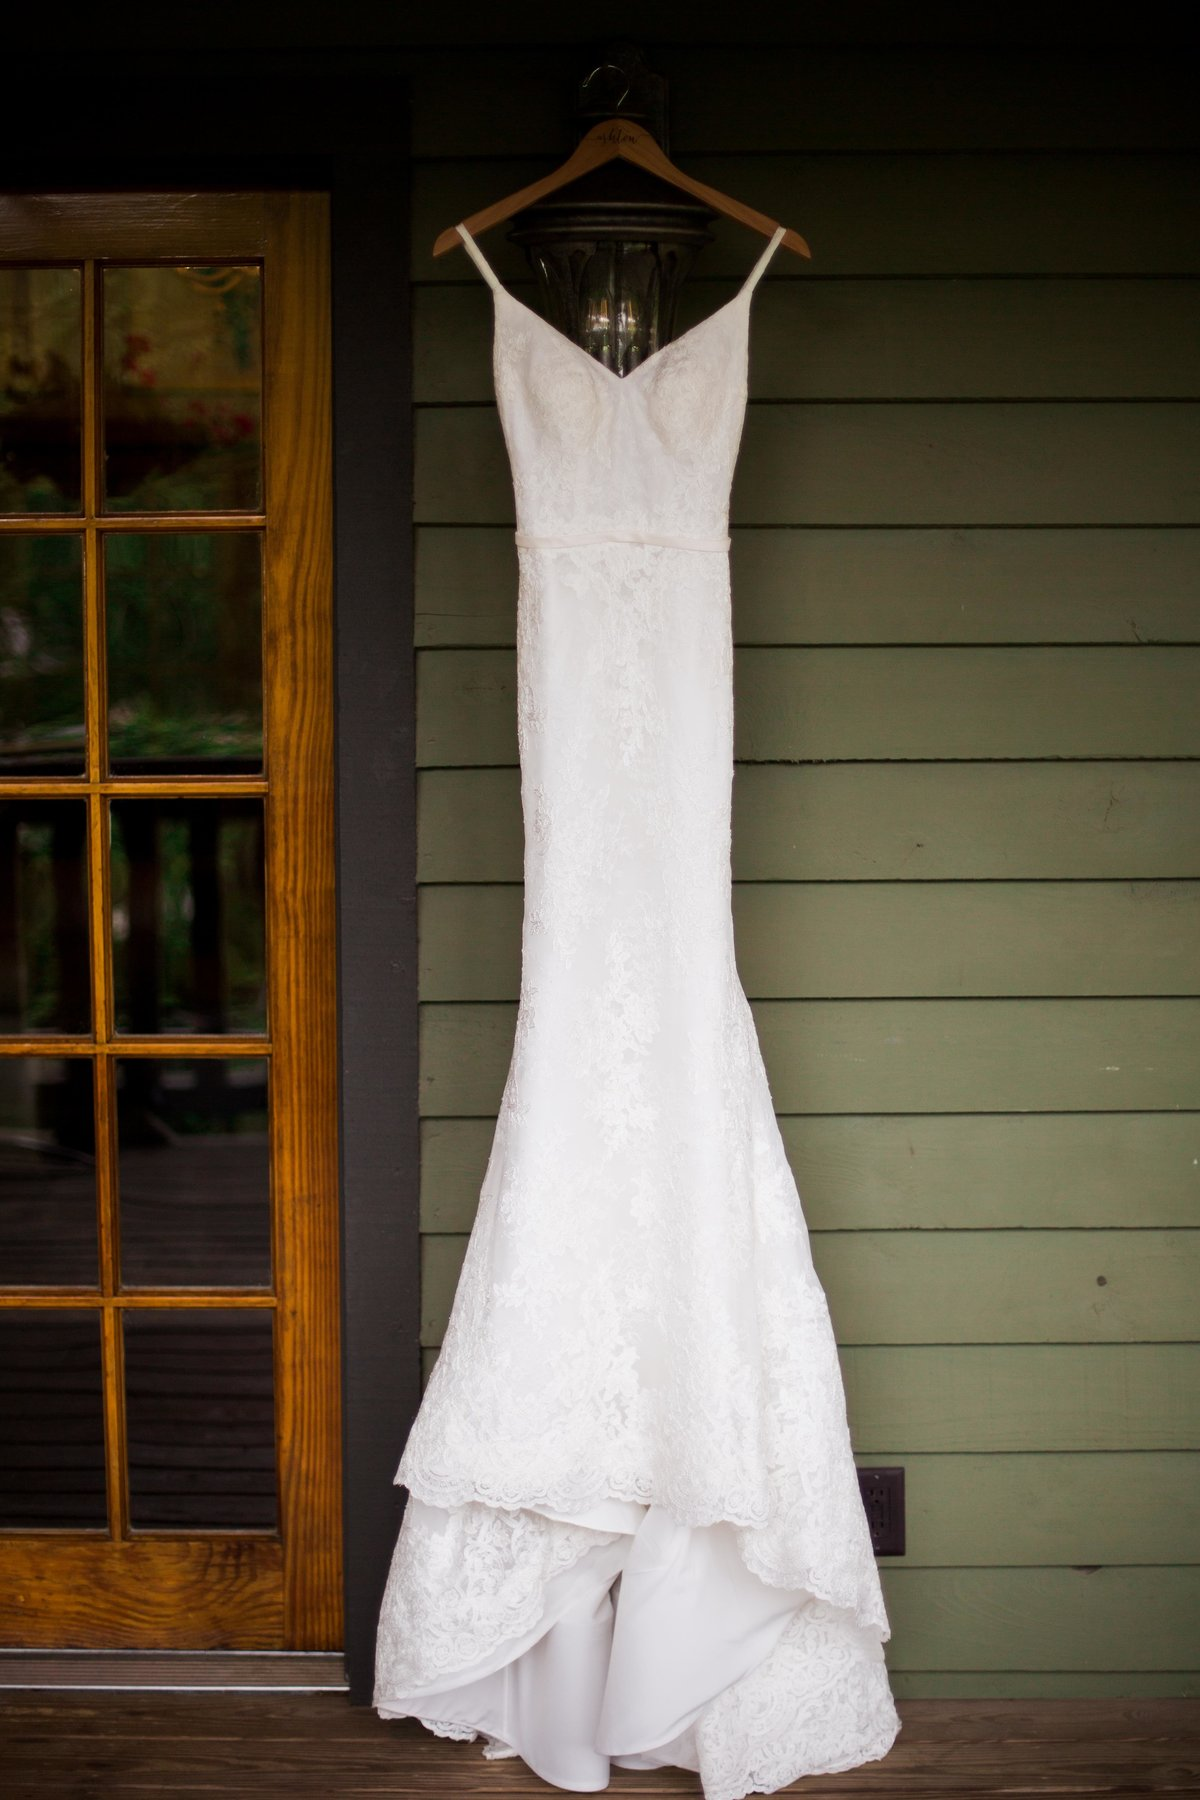 Windwood_Equestrian_Arden_Alabama_Birmingham_Outdoor_wedding254